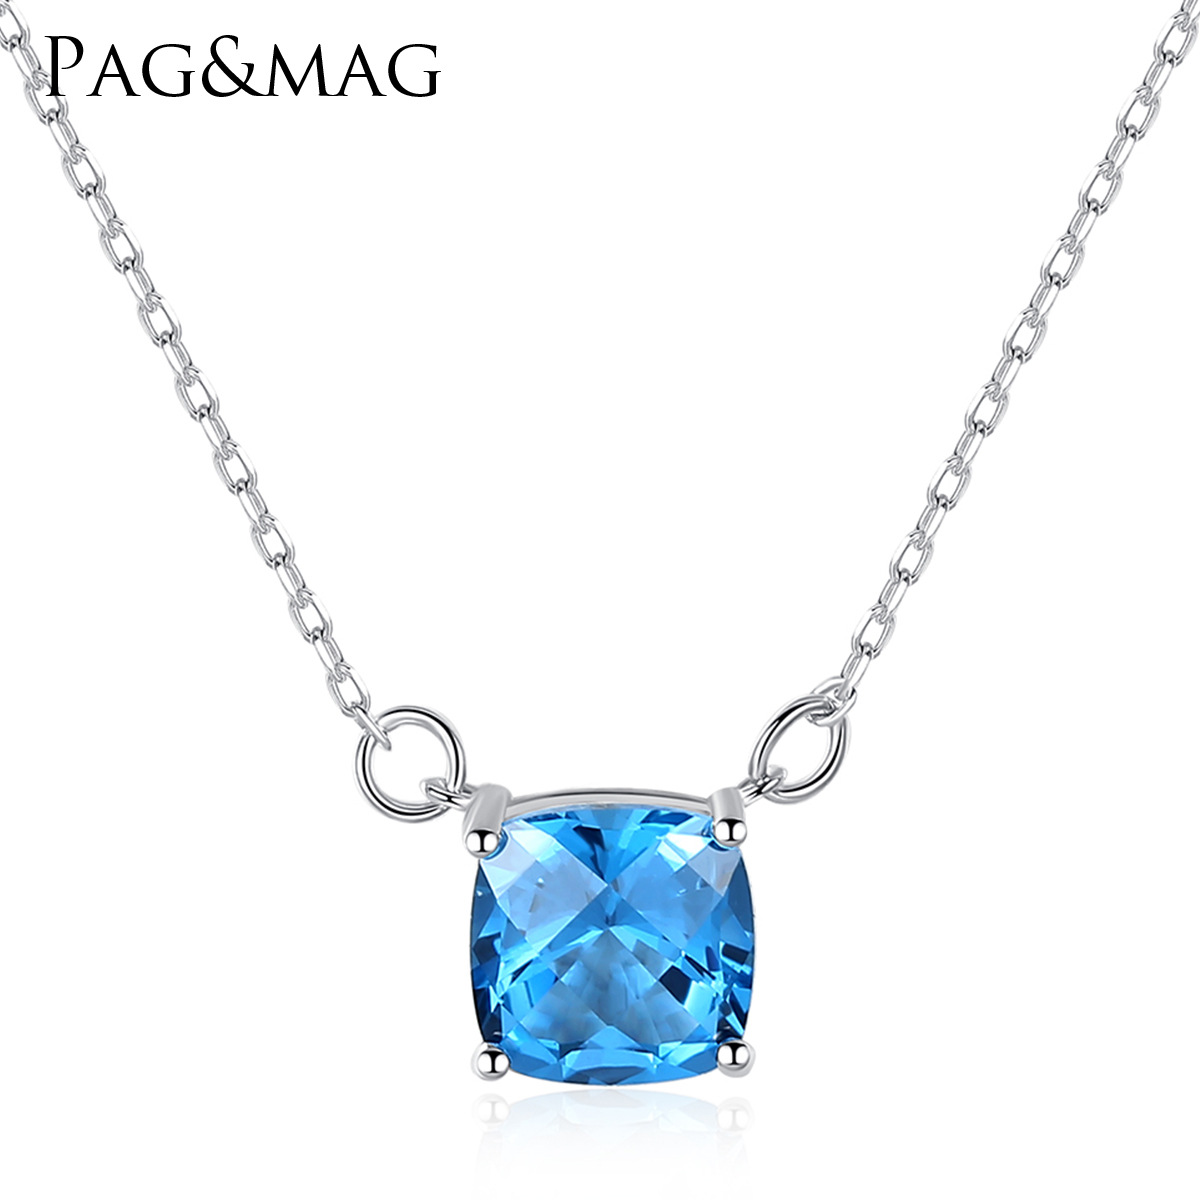 PAG-MAG S925 Sterling Silver Necklace Natural Topa stone pendant blue crystal fashion accessories(China)